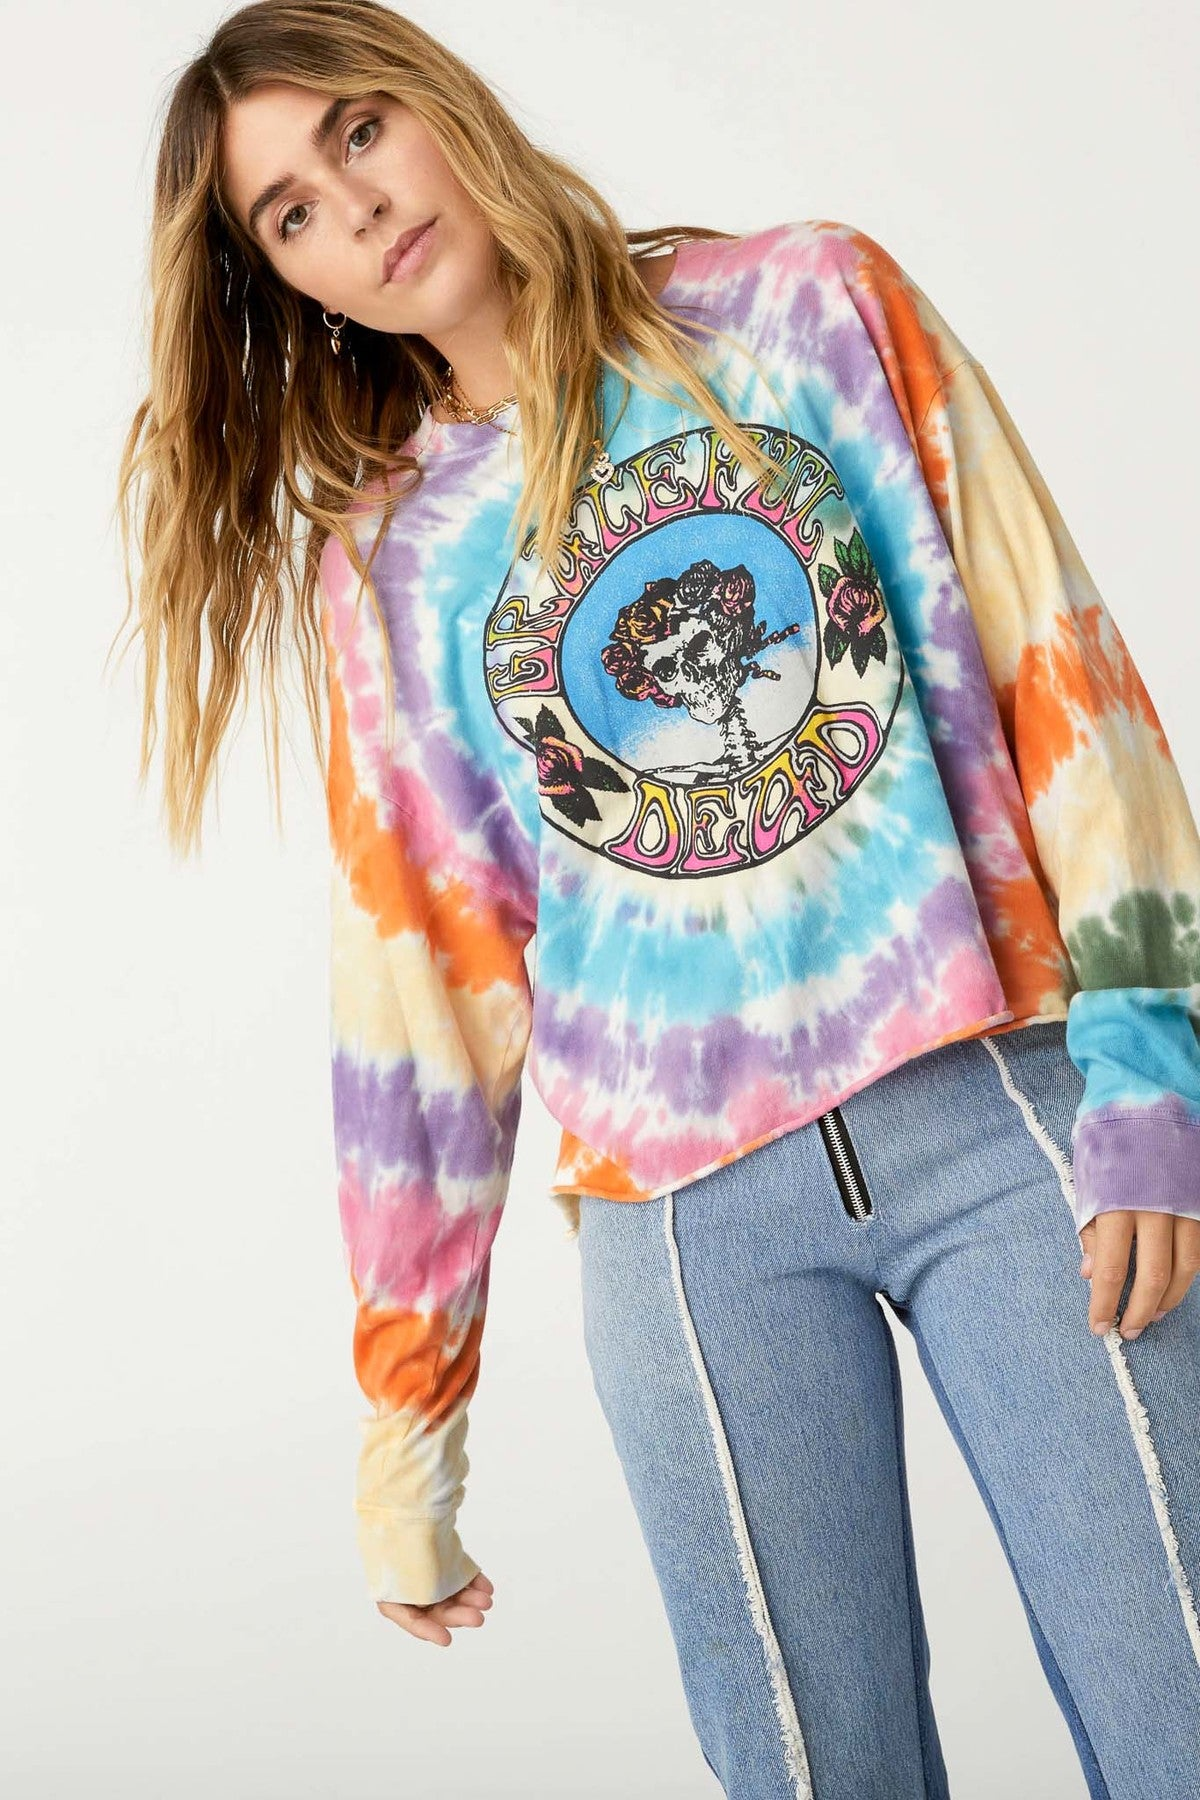 Daydreamer Grateful dead TIE DYE LS Crop Tee LS005GRA605D Black s-2 m-2 l-1